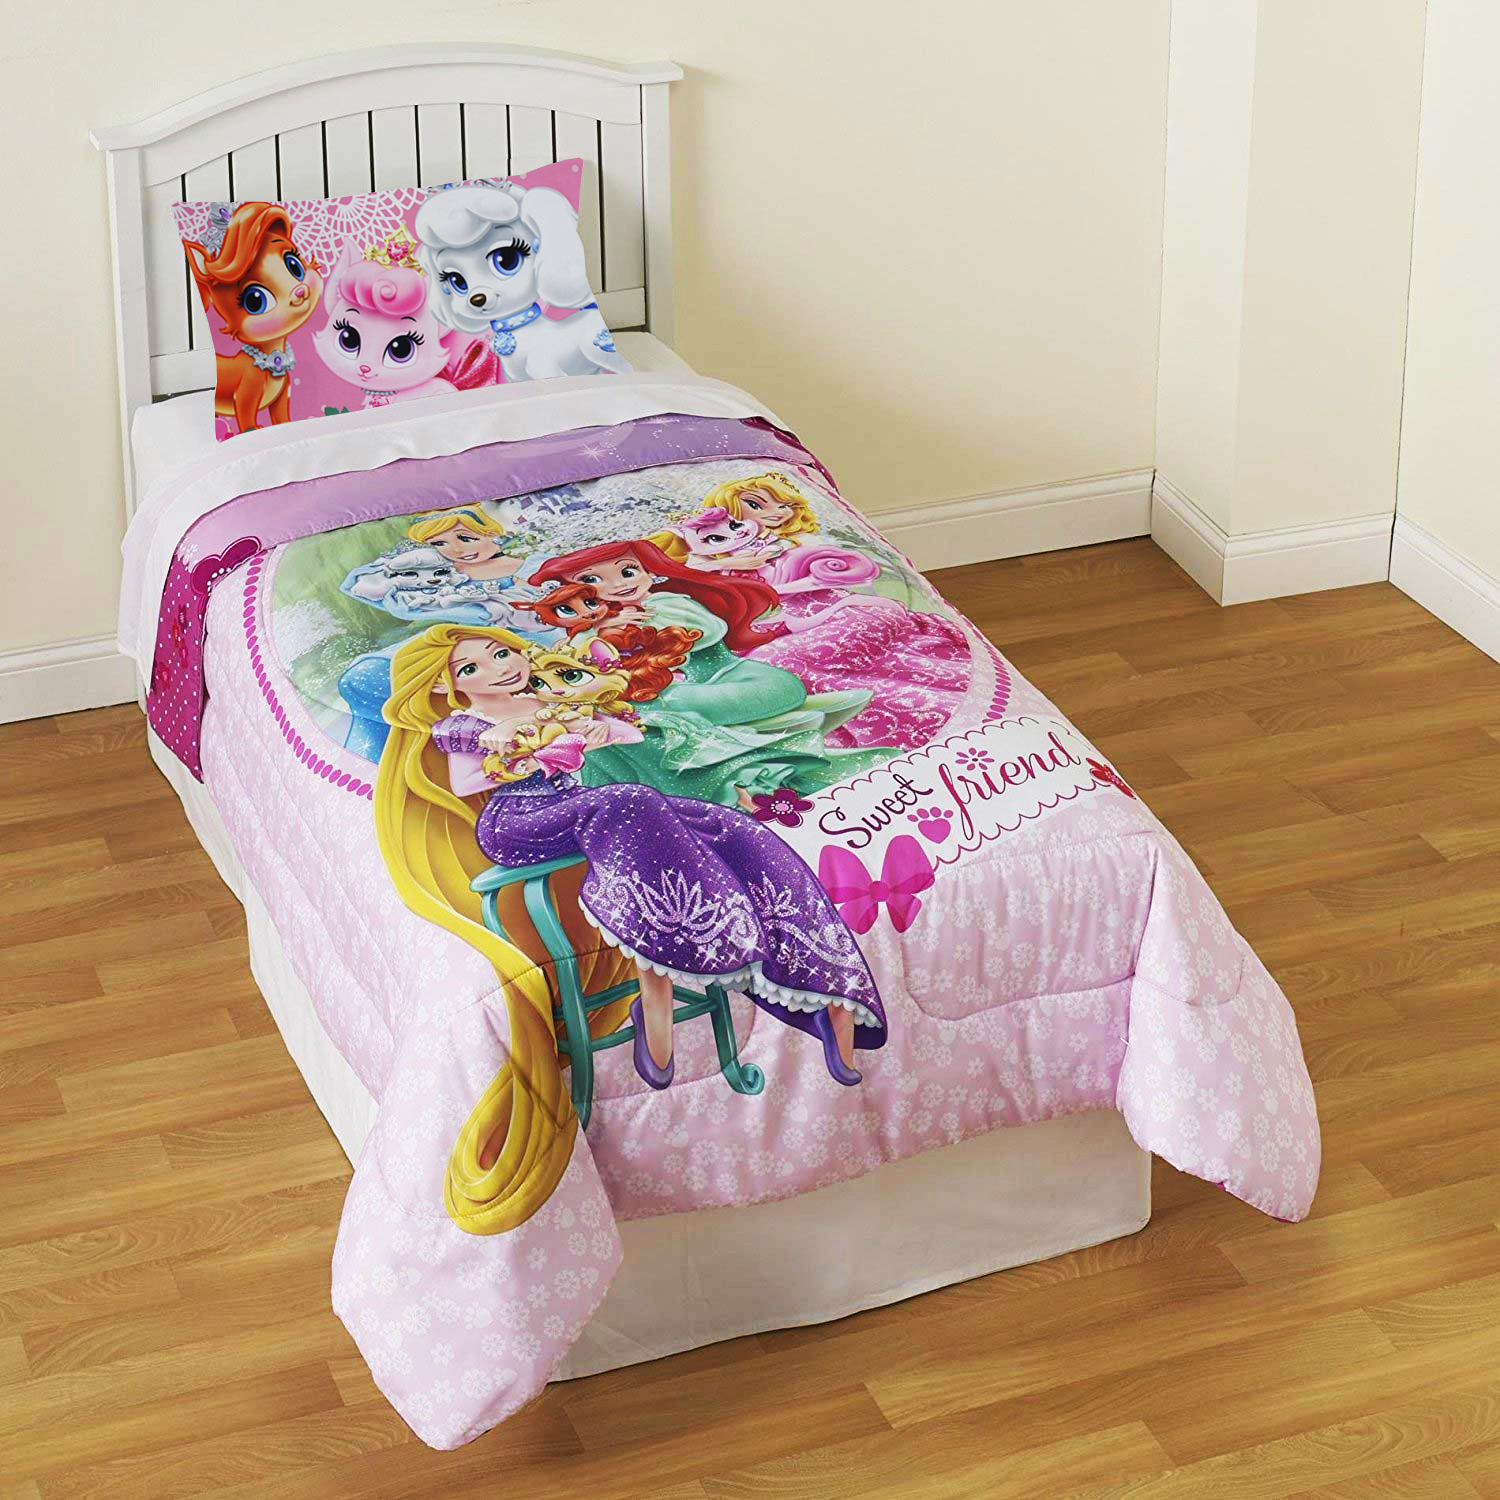 Disney Princess Palace Pets Twin Comforter Set - 29pc Sweet Pet Friends Bedding and Wall Stickers